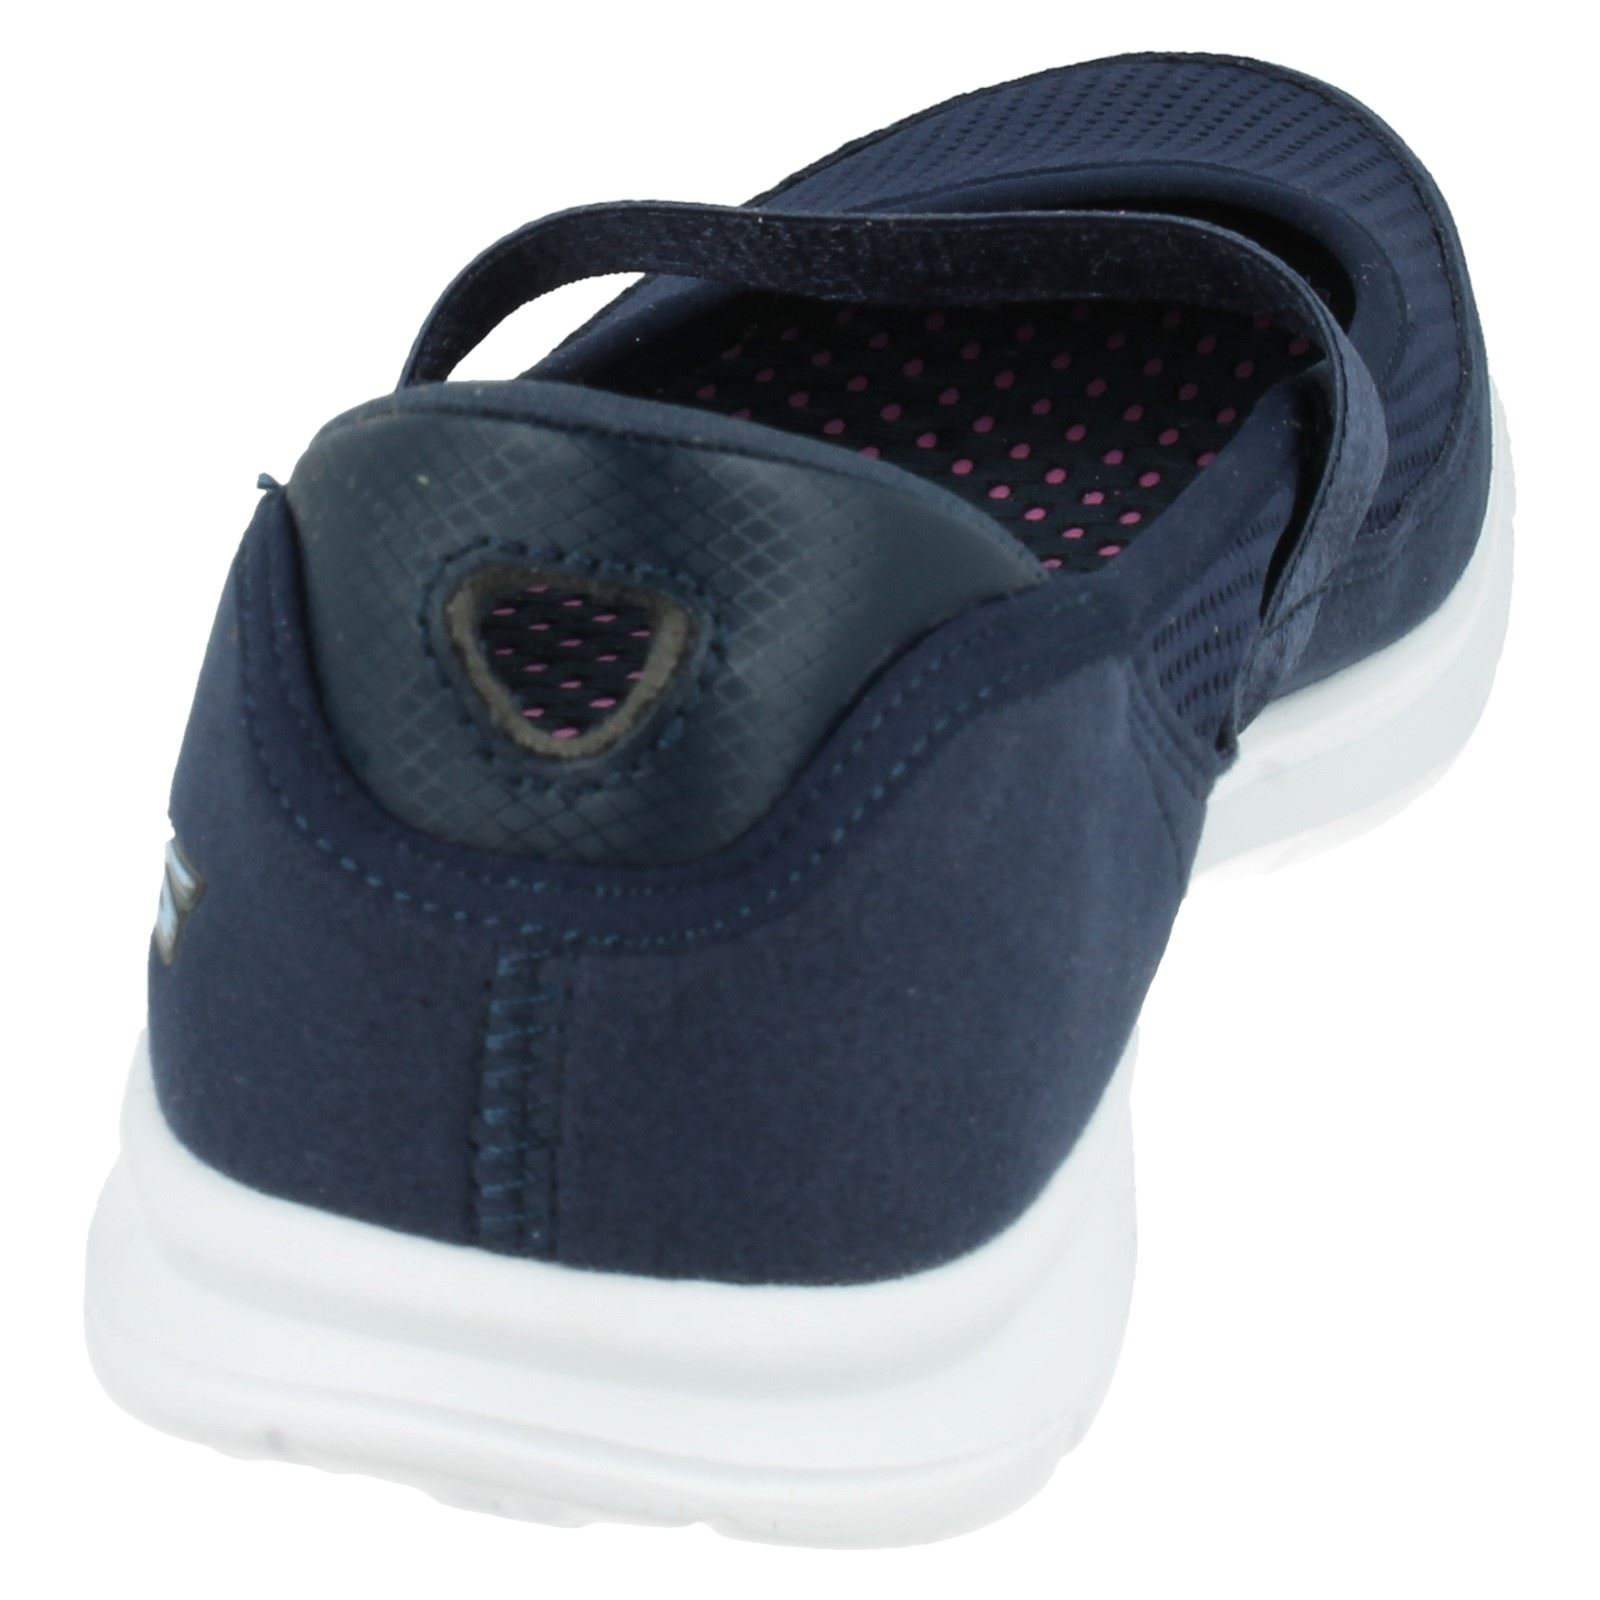 Label 14213 Casual Navy Original Skechers Shoes Step Ladies nvlb Go 6fqZYZ